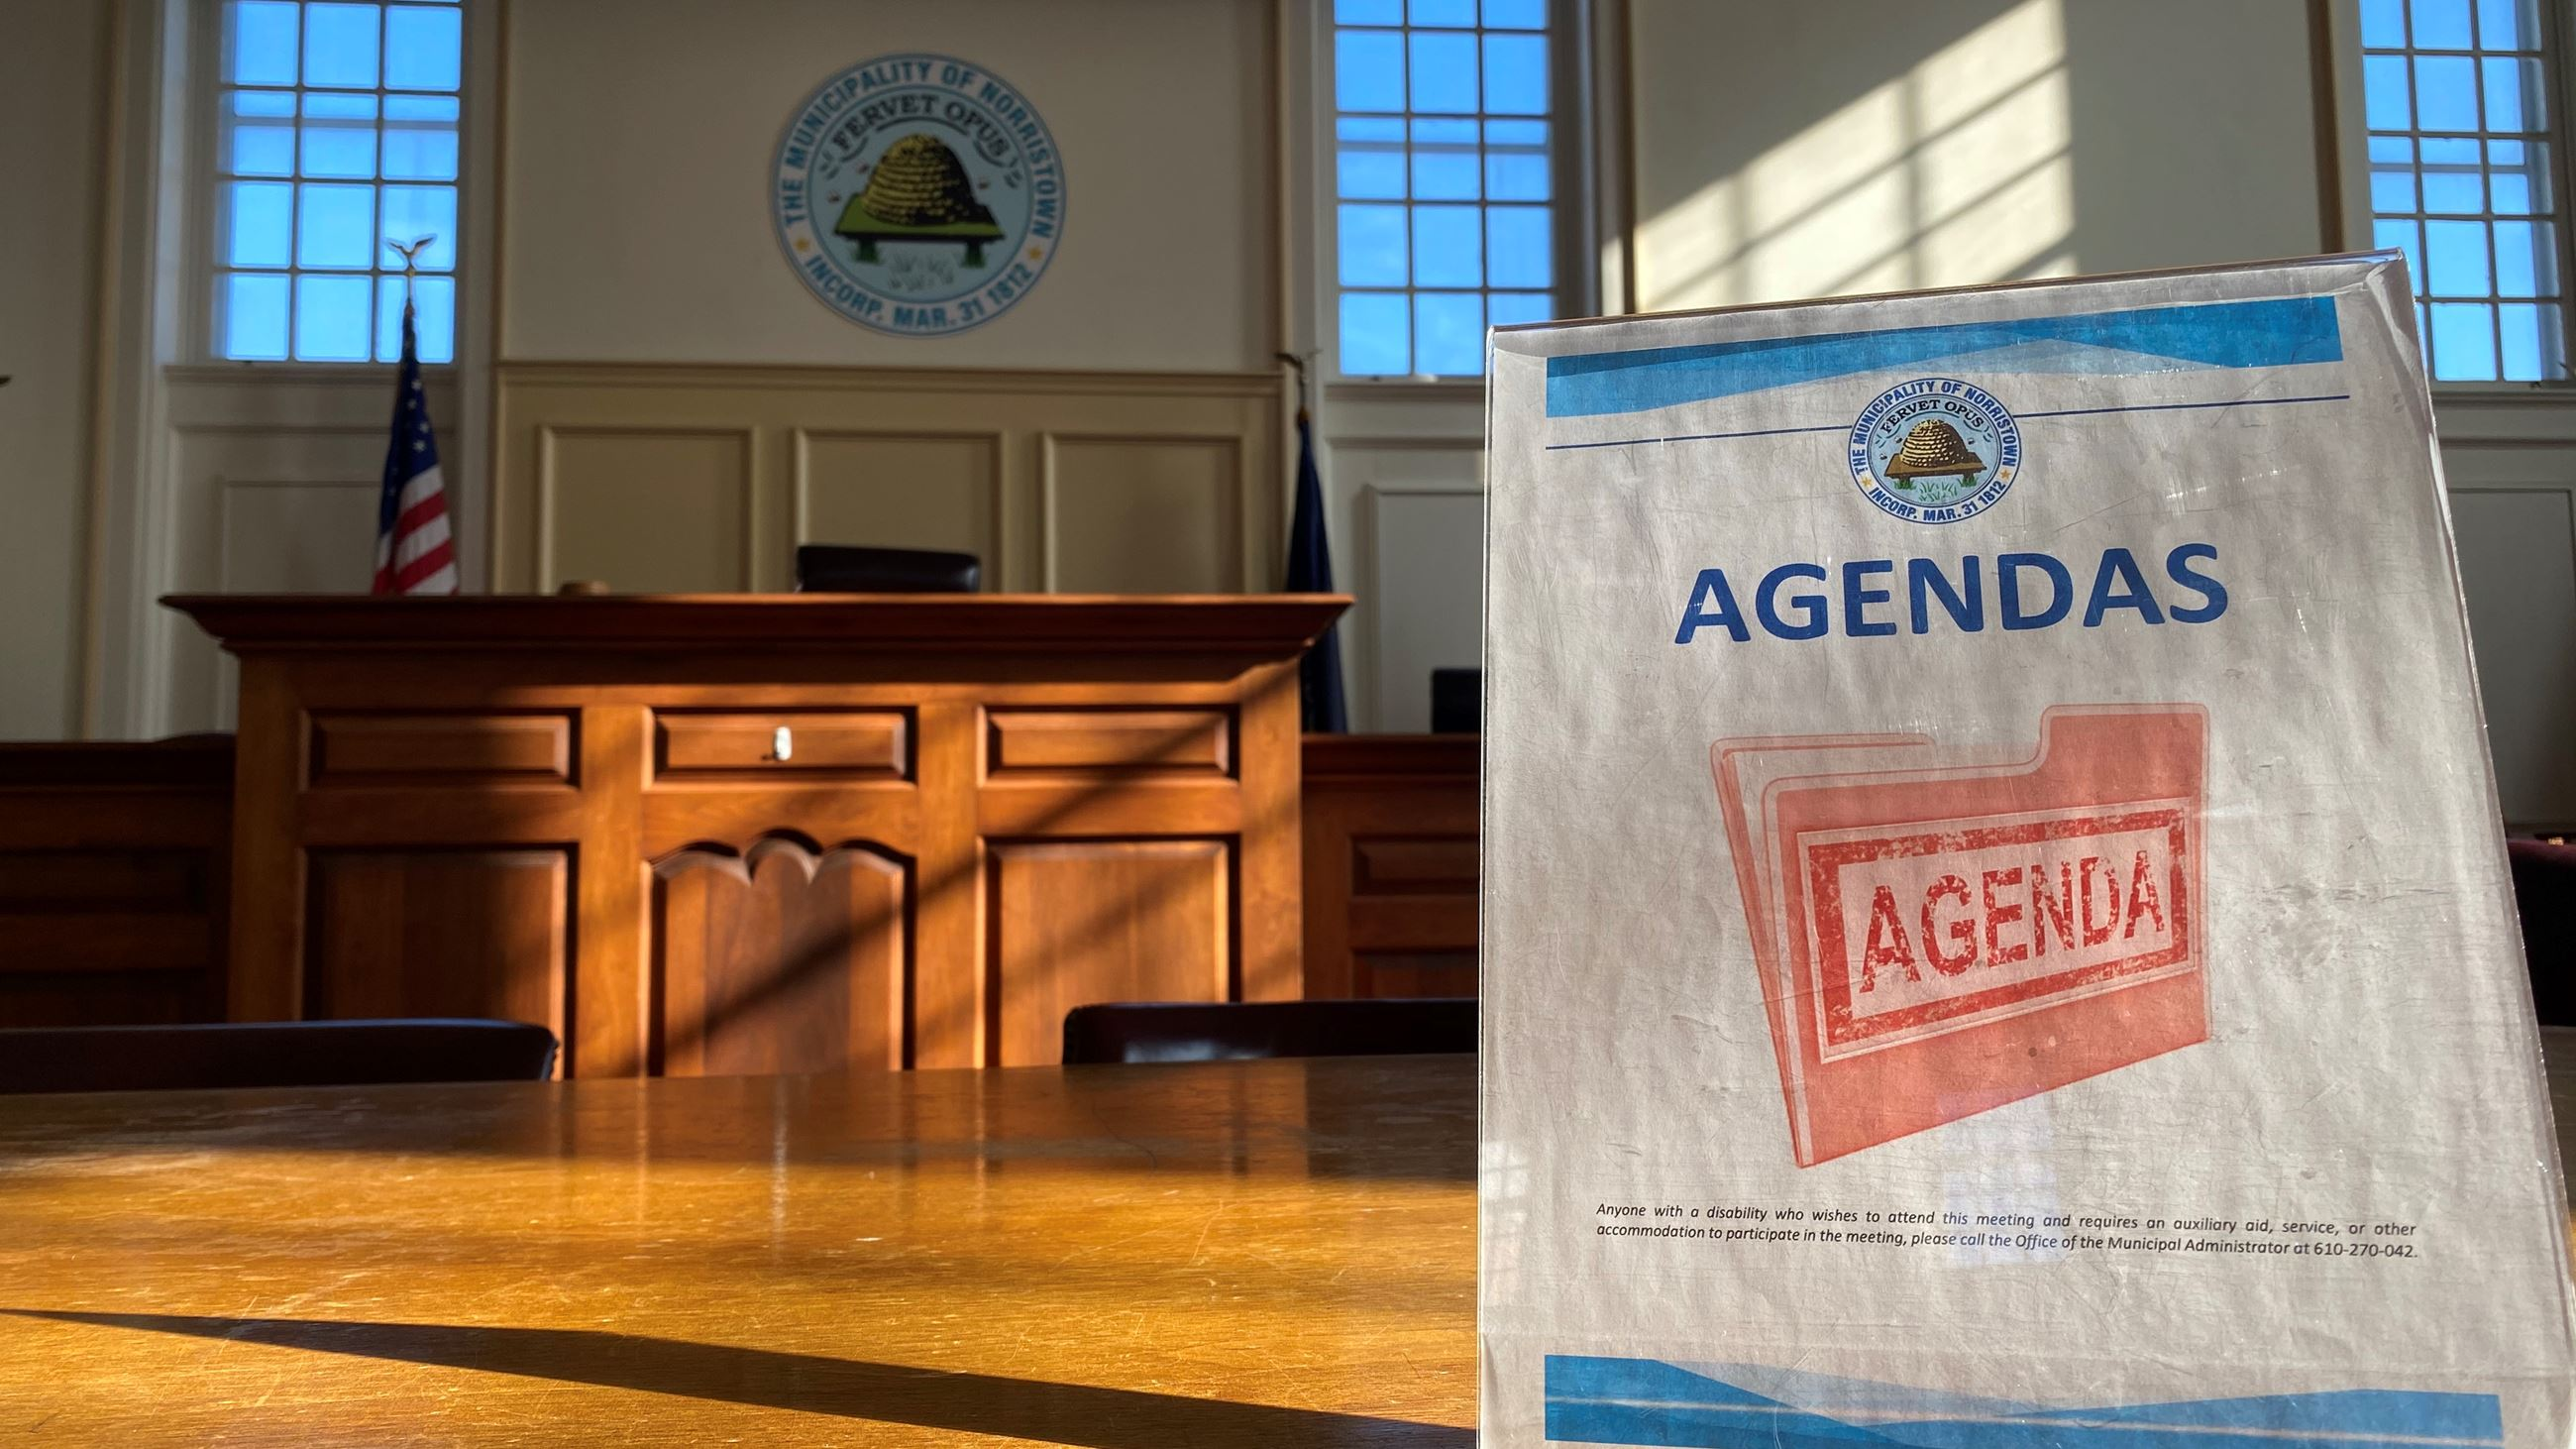 Agenda sign in council chambers